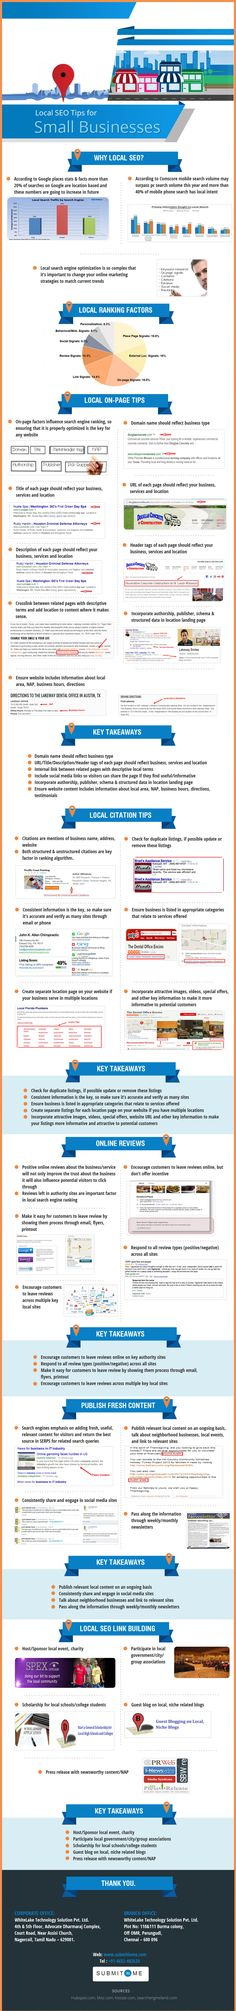 Local SEO Tips for Small Business #infographic #business #SEO #LOCALSEO I am so tired of Penguin and Panda updates. Aren't you? No SEO Forever - A Bestselling book on Amazon. http://getaccess.me/no-seo-forever-pinterest